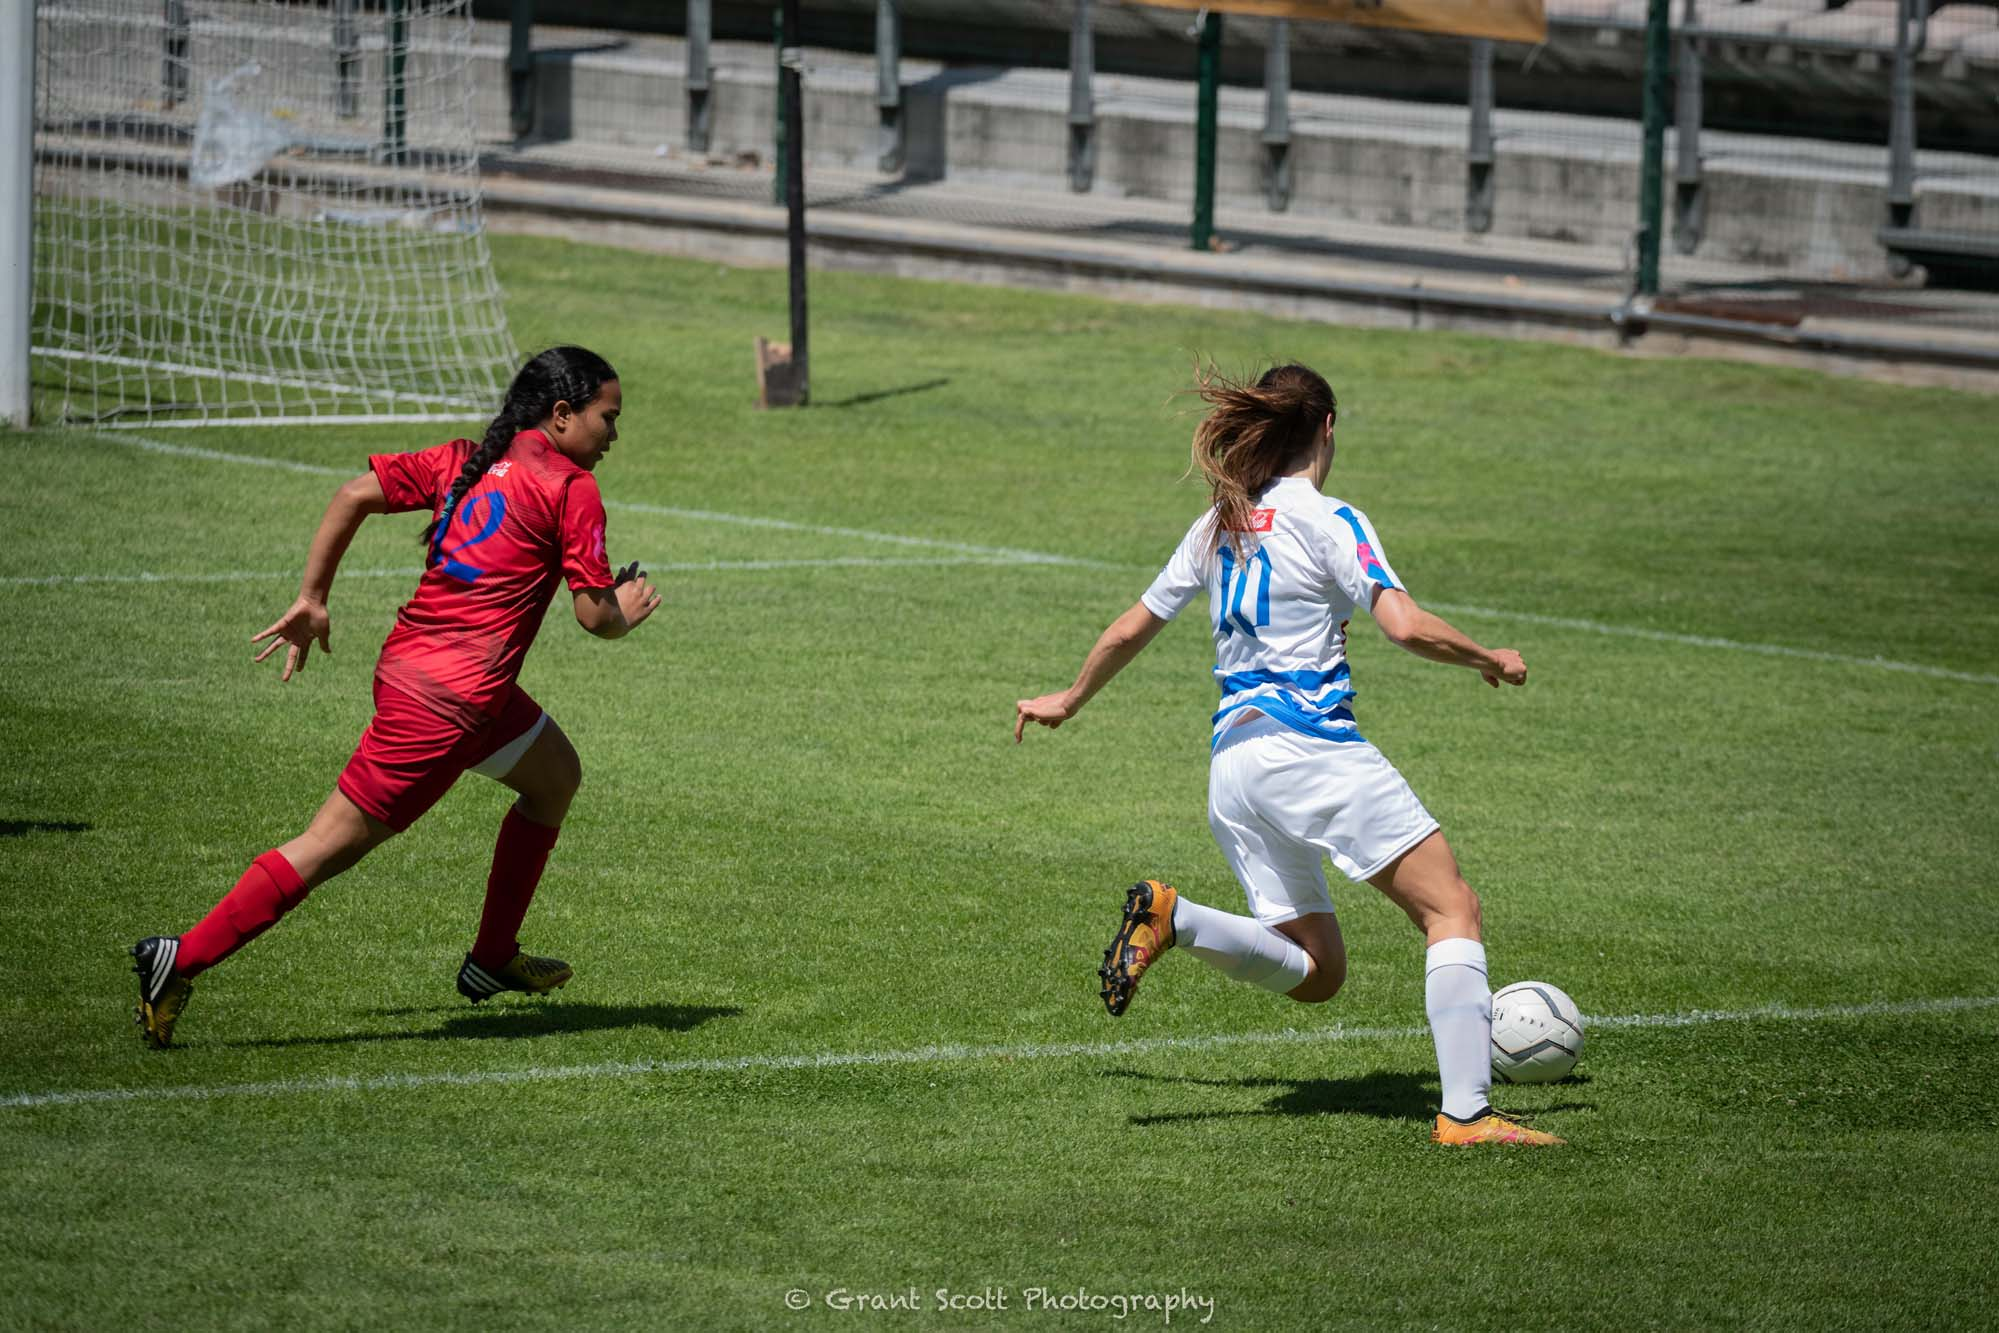 Captain Nina Woermann in action against Cape Town Spurs Women's Football Club in a game that saw the UCT women's football team taking home the Coca-Cola Cup with a 2–0 victory.